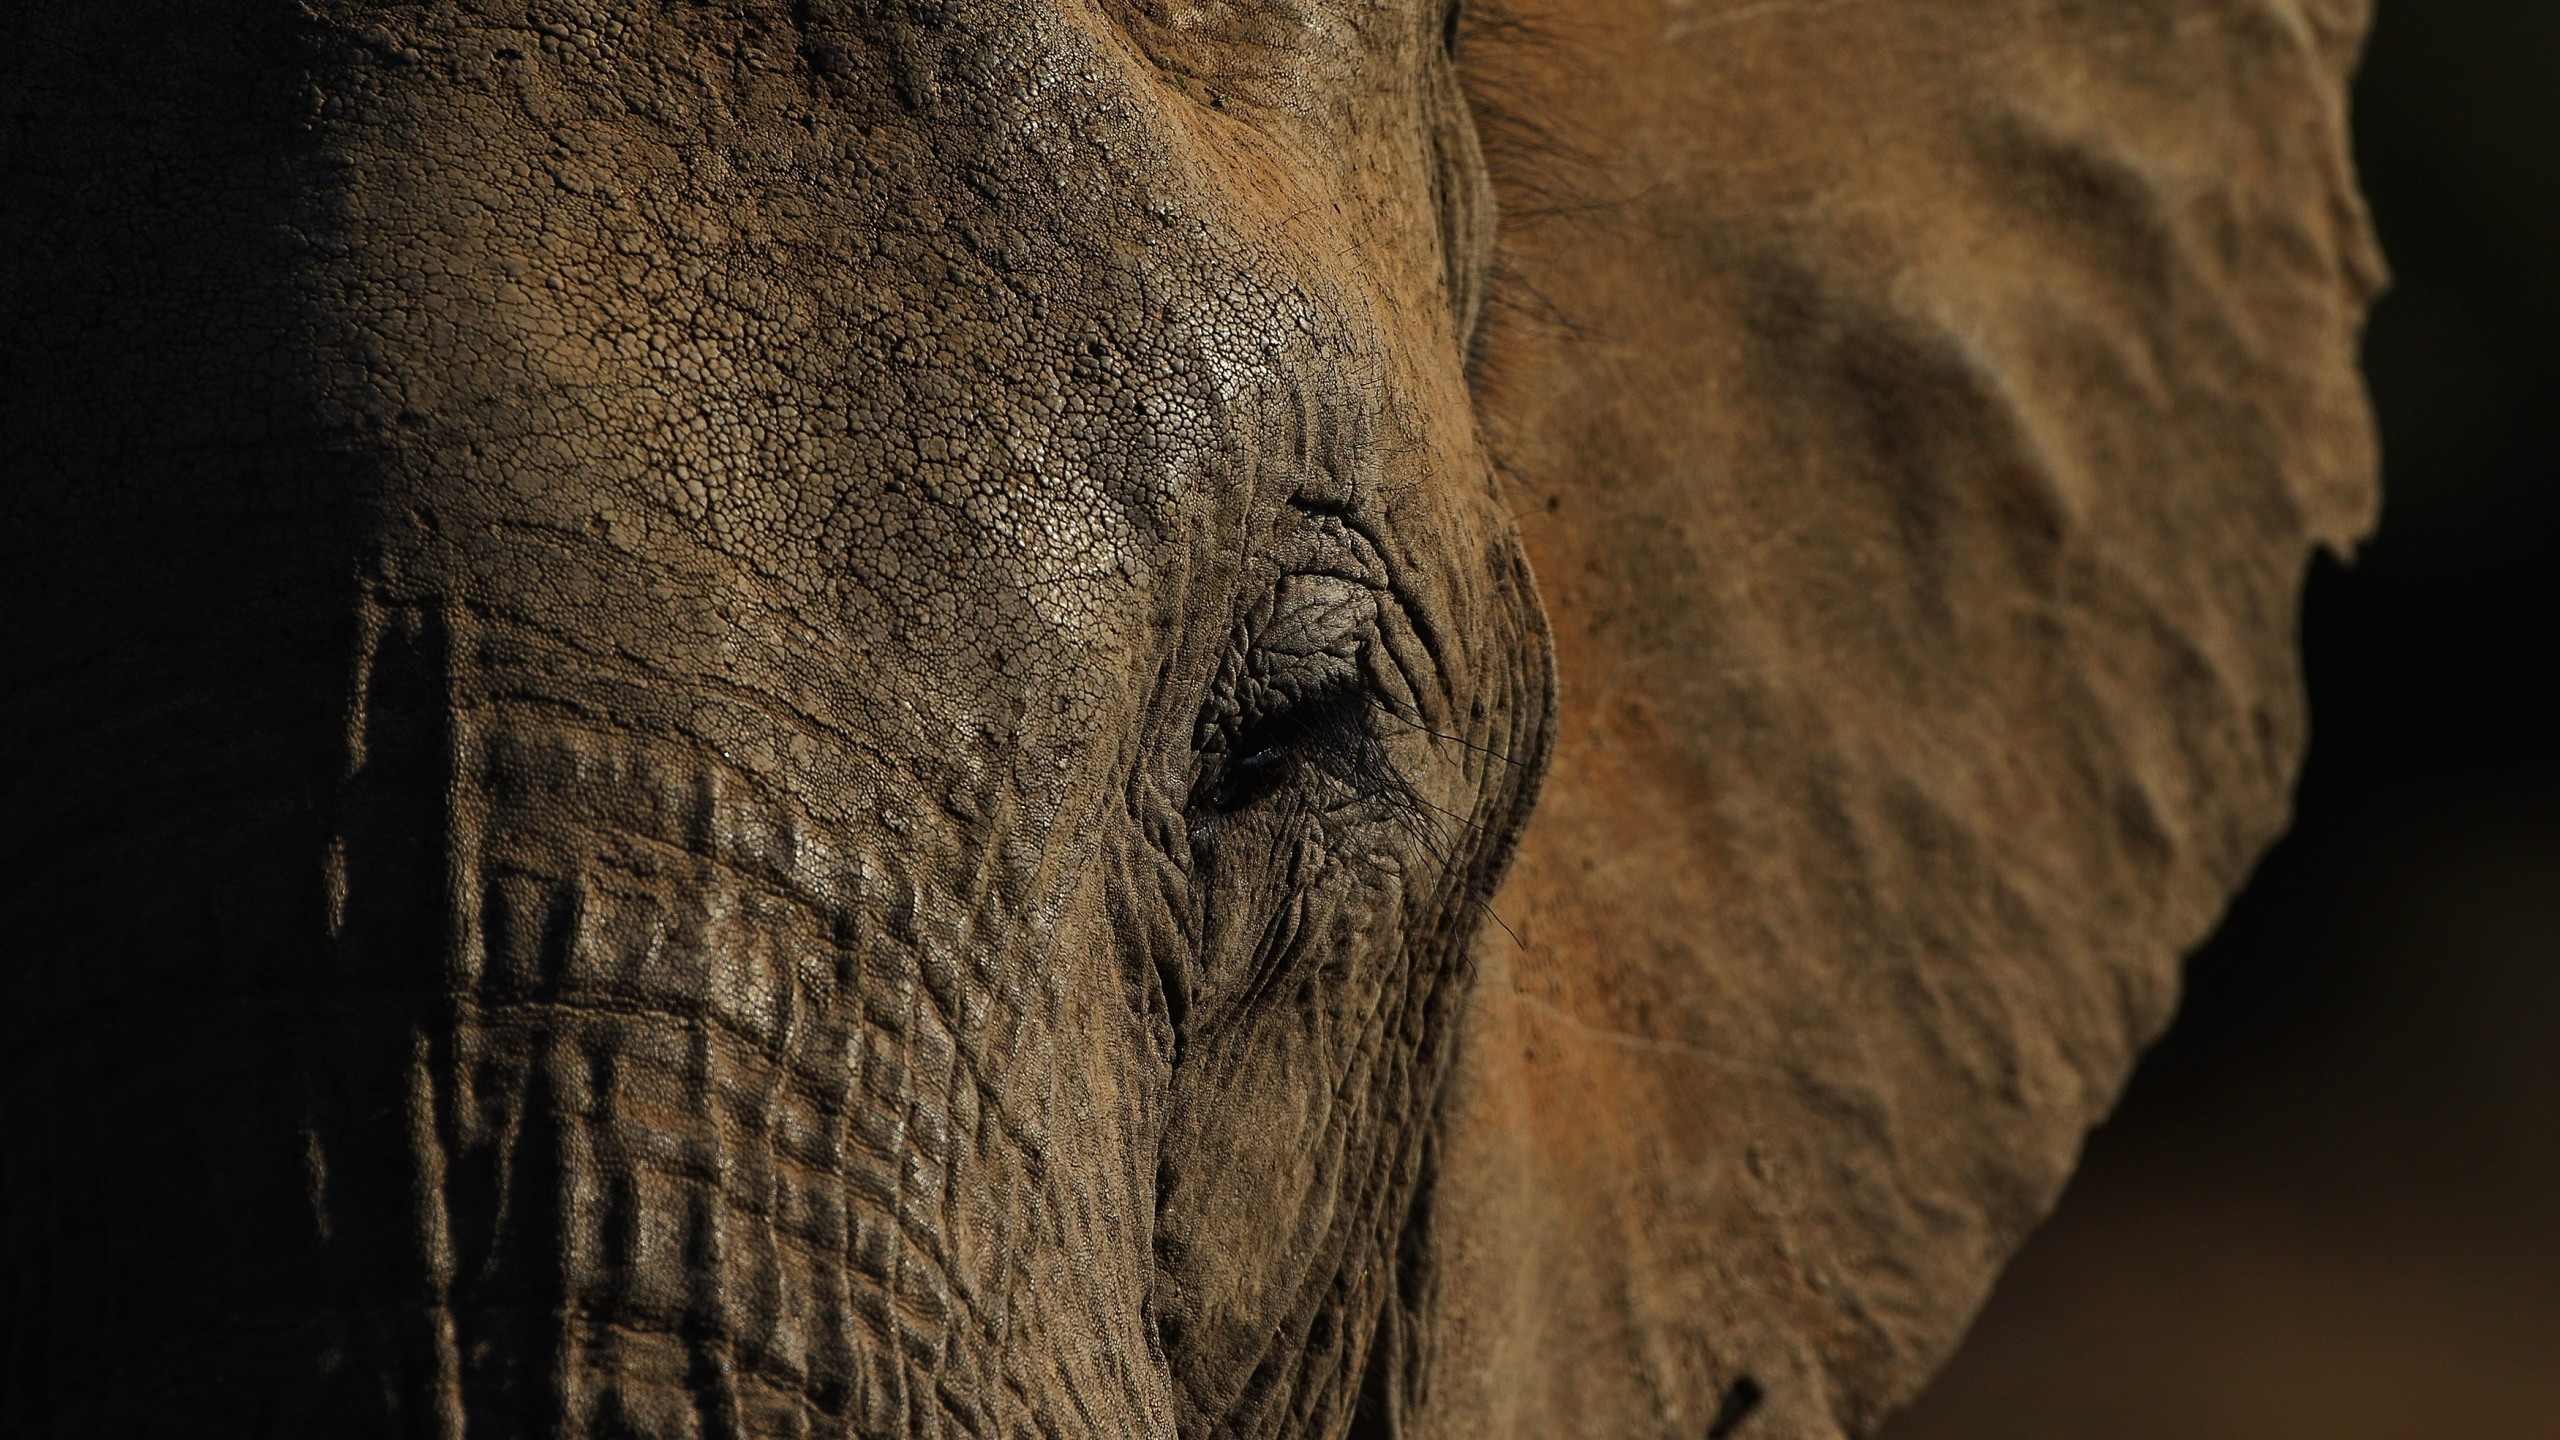 Detail of an elephant at the Mashatu game reserve on July 26, 2010 in Mapungubwe, Botswana. (Credit: Cameron Spencer/Getty Images)